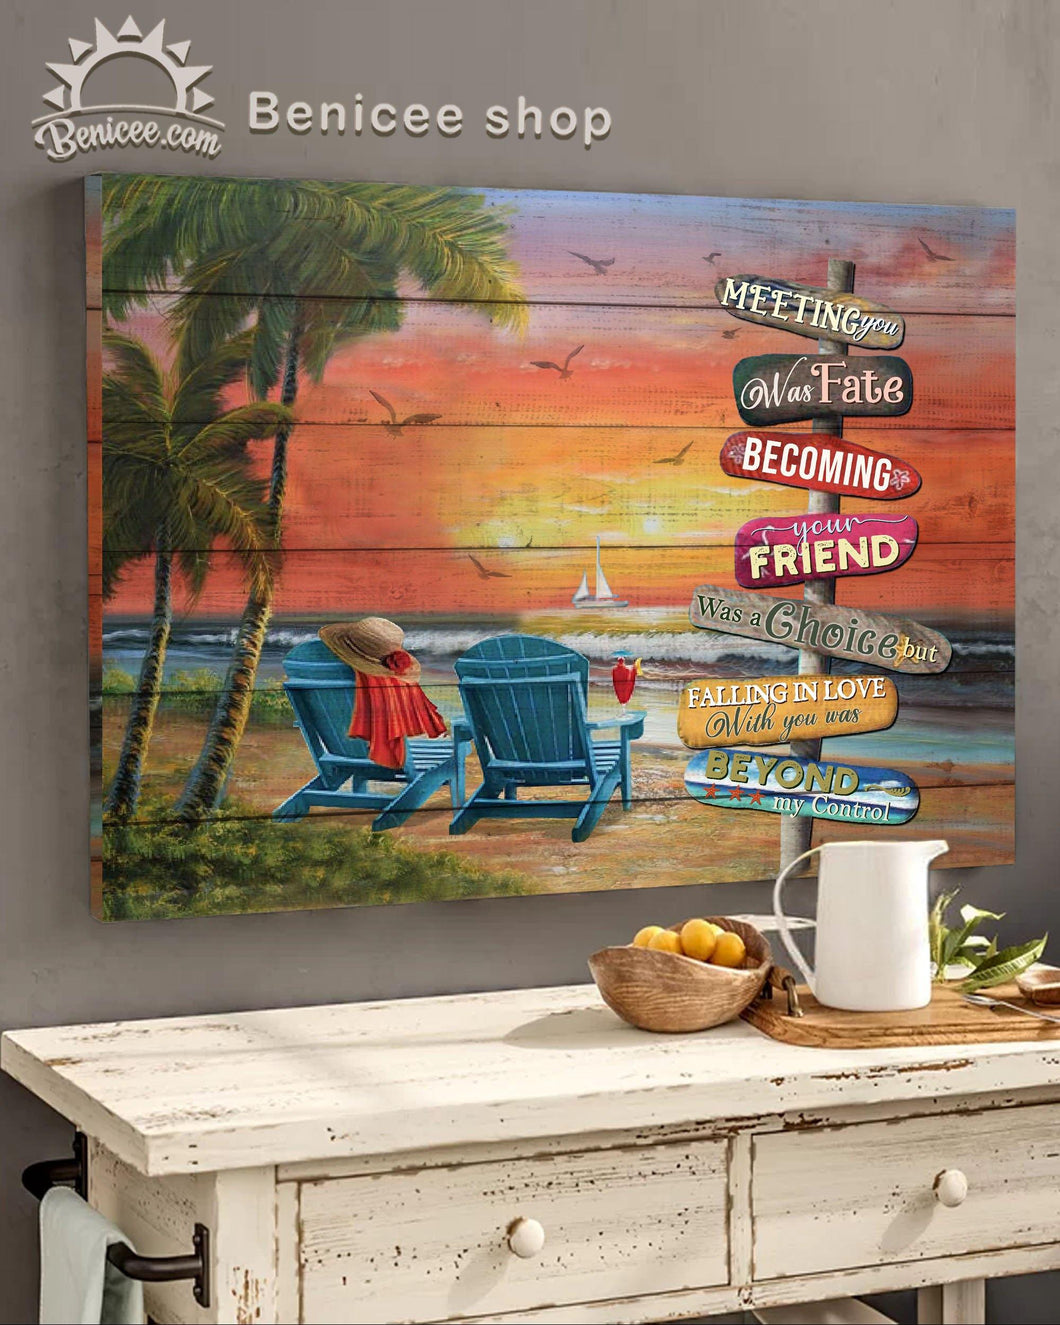 BENICEE Top 10 Beach House Decor - Meeting you was fate becoming Wall Art Canvas-Canvas Print-Benicee